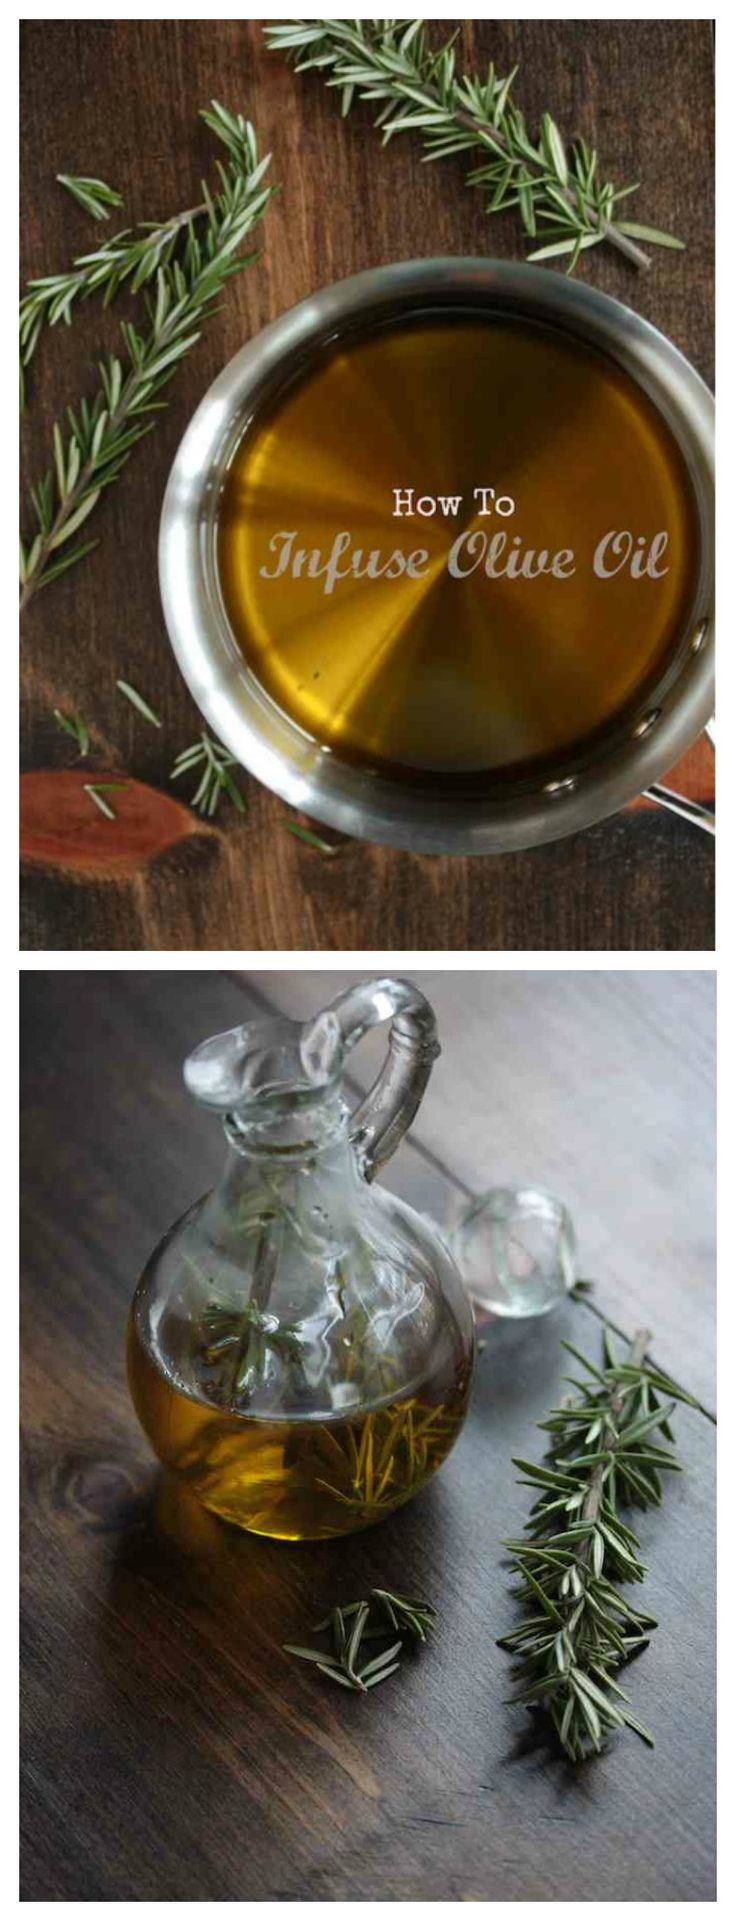 How to Infuse Olive Oil - So many different herbs to try! Garlic, rosemary, the possibilities are endless!